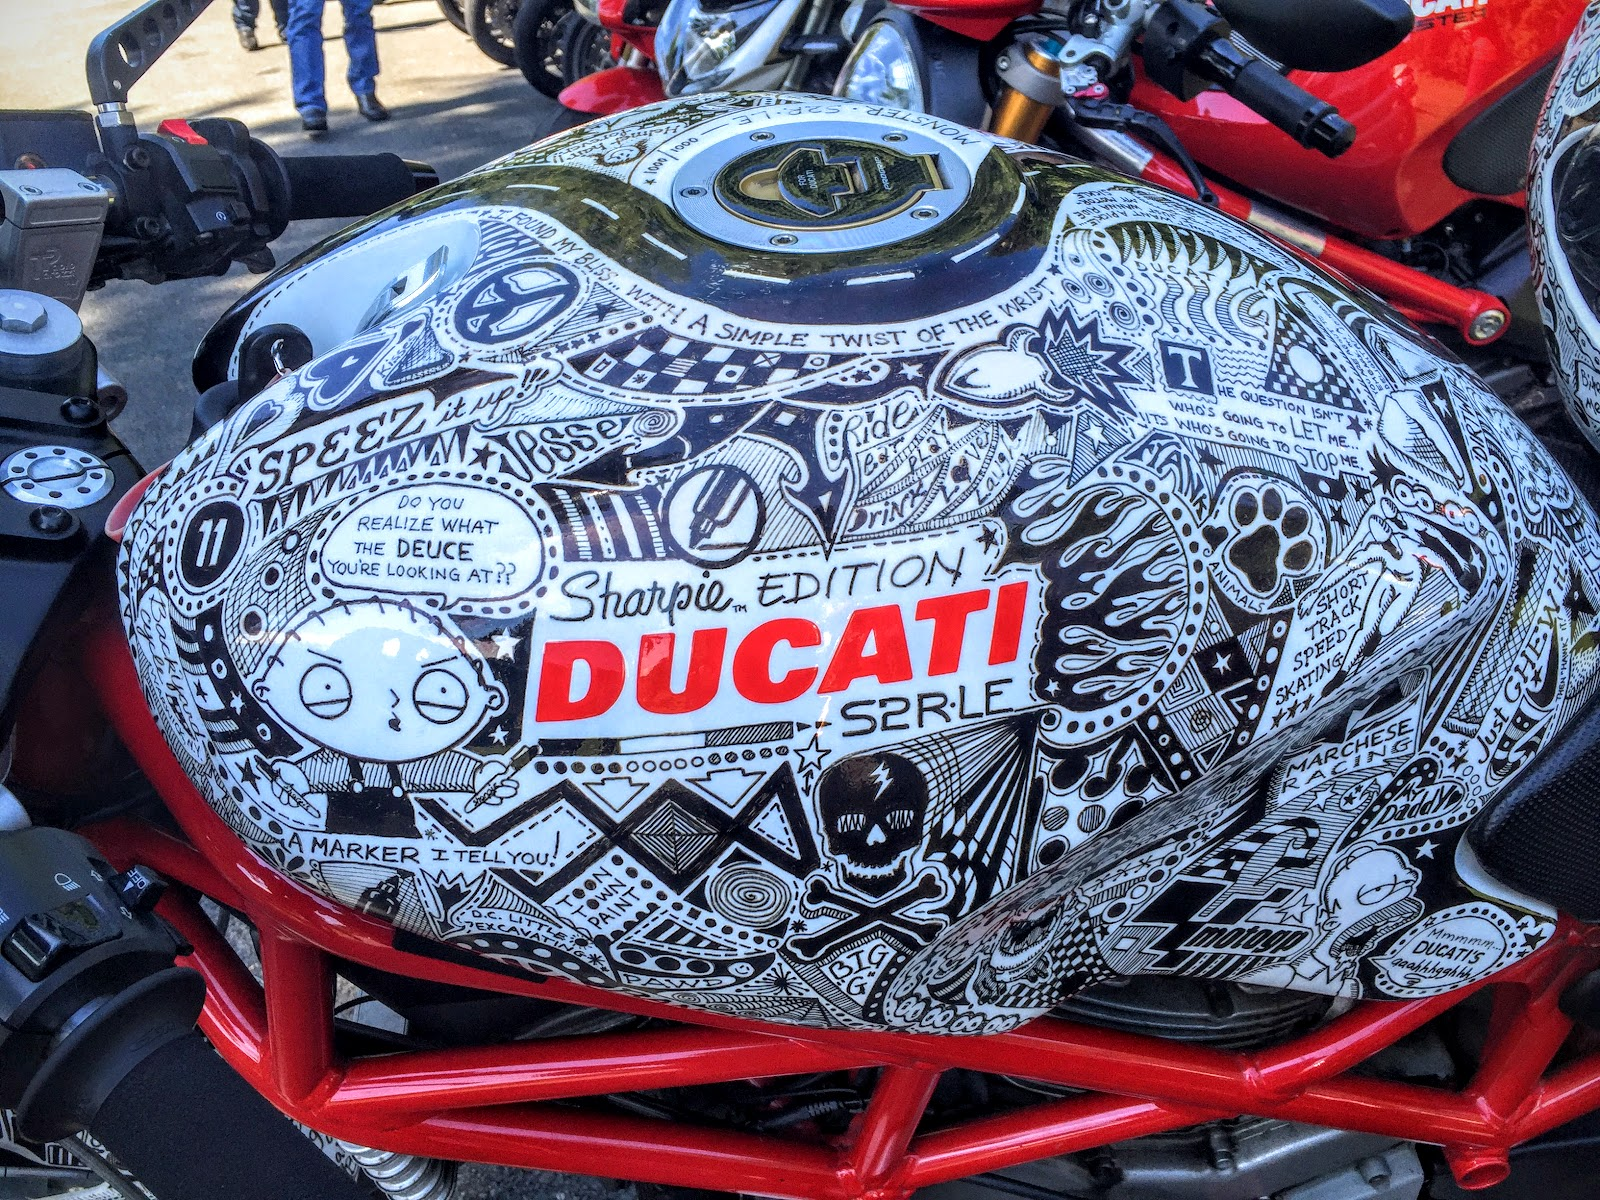 Sharpie Edition Ducati Monster S2R by Jody Whitsell